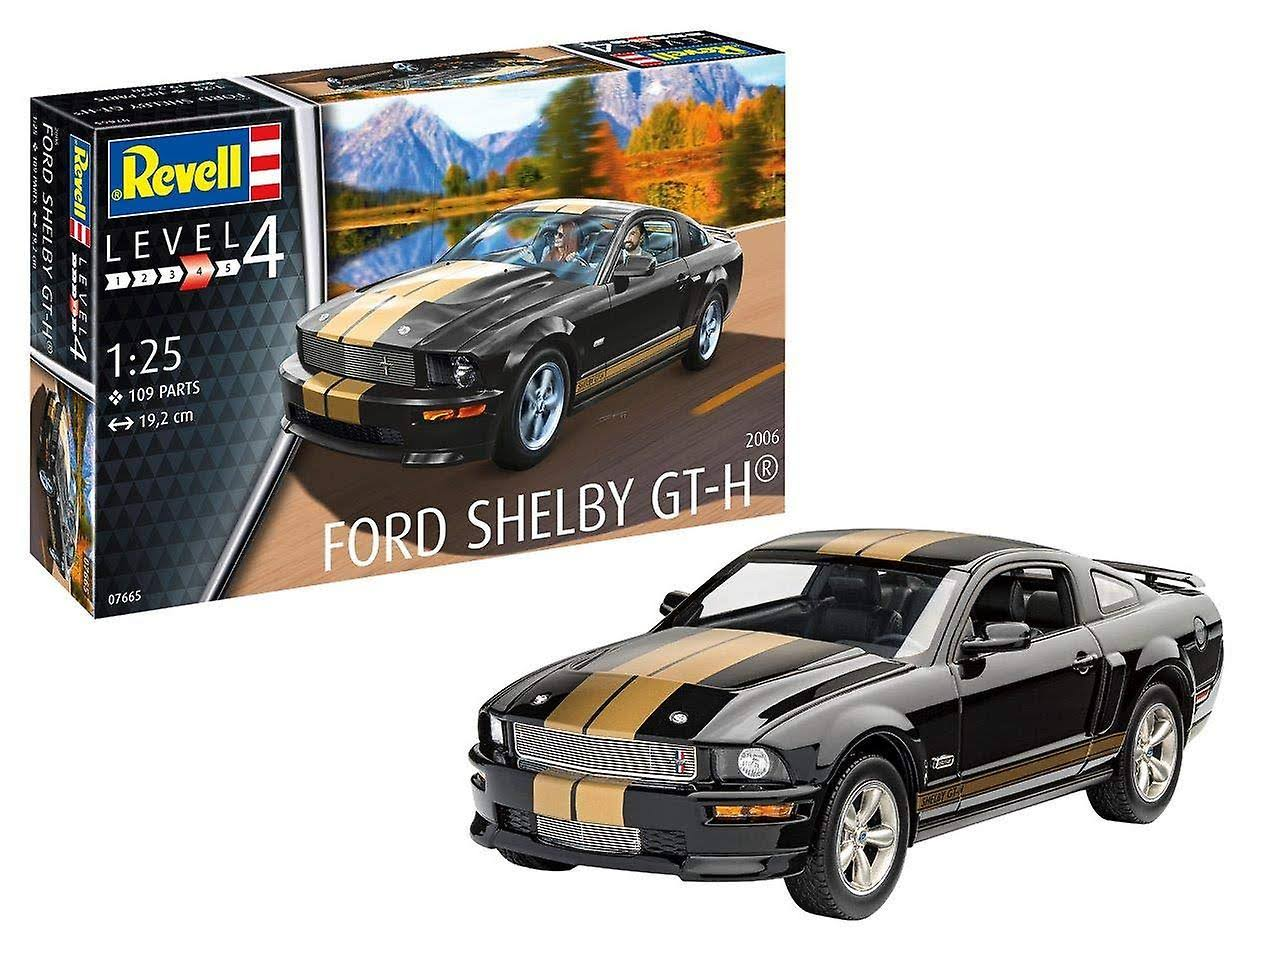 Revell Ford Shelby GT-H Model Kit - Scale 1:25